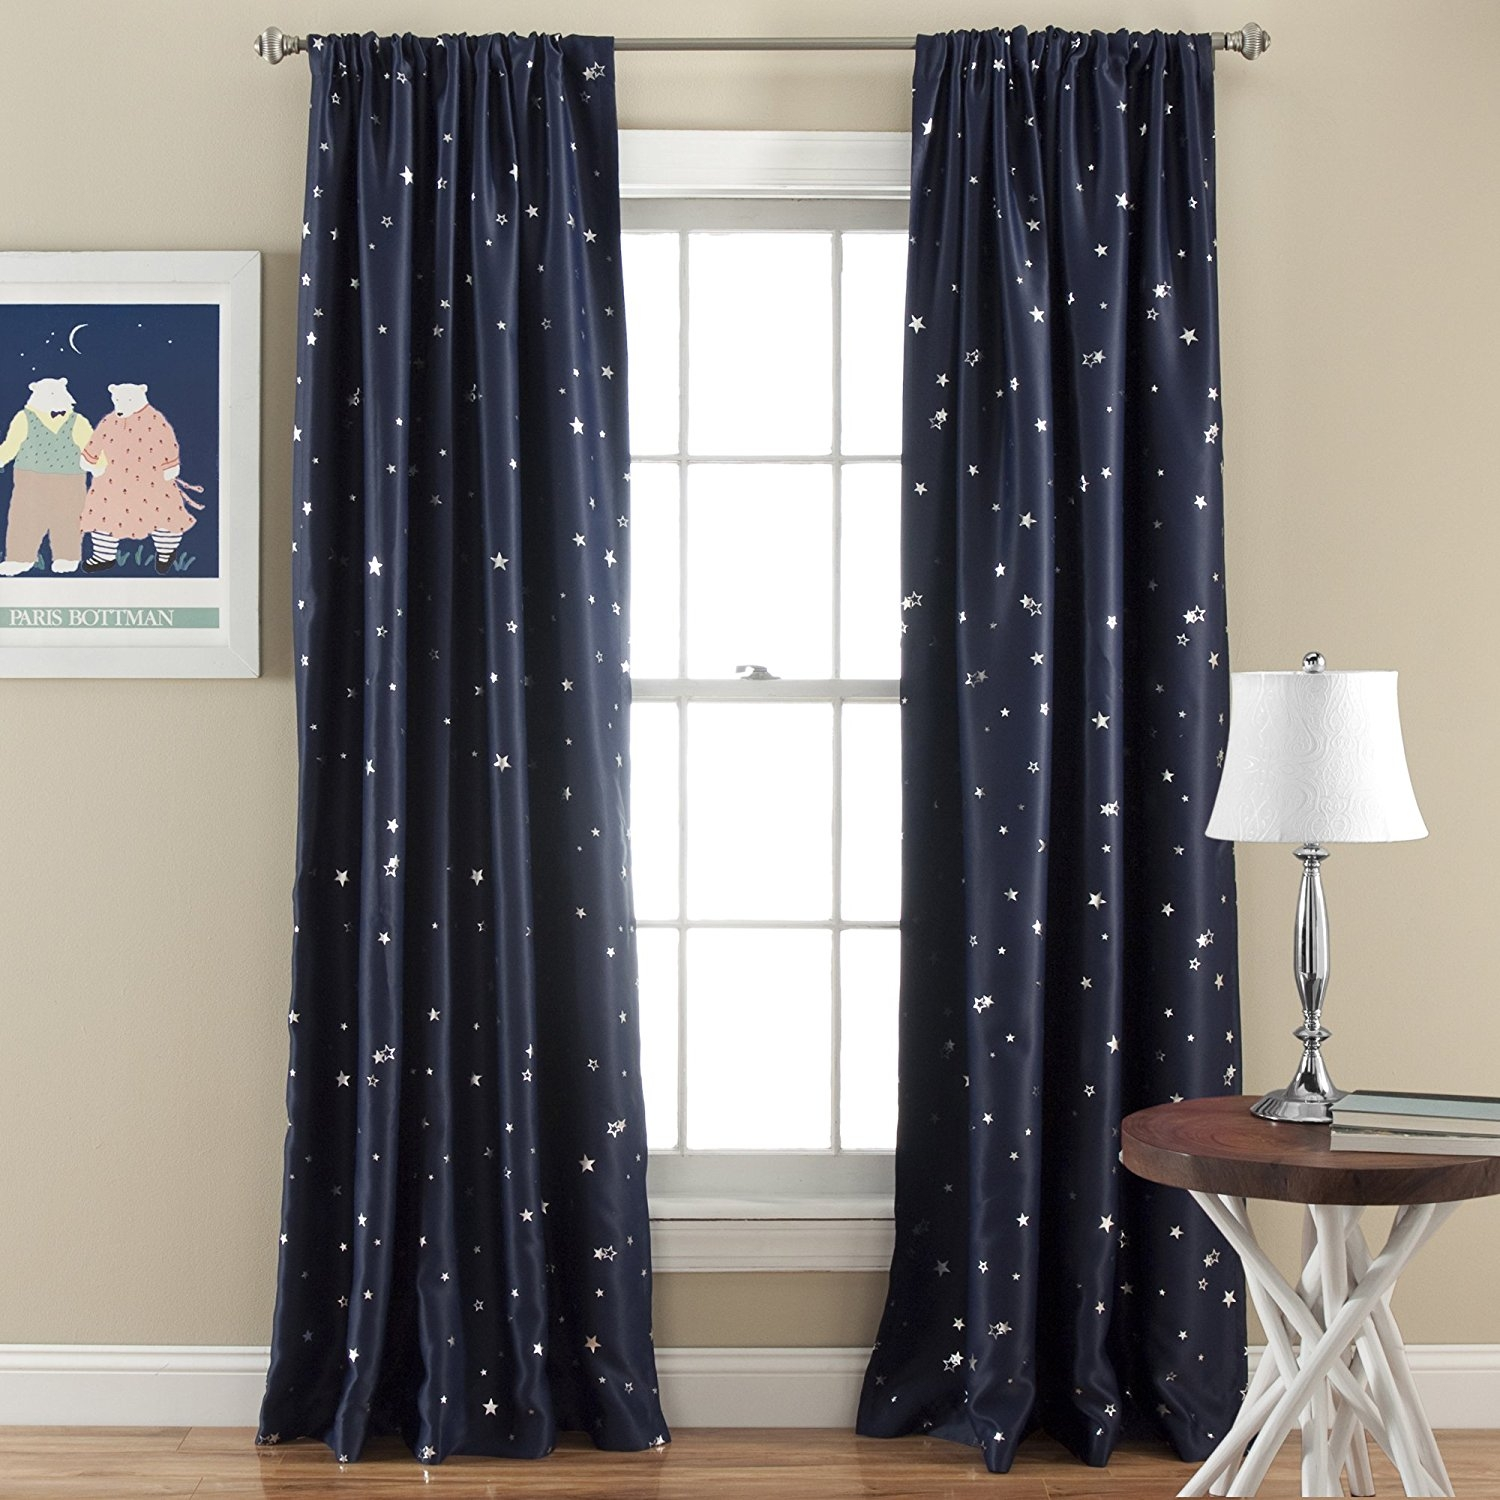 15 Collection of Thick Bedroom Curtains  Curtain Ideas